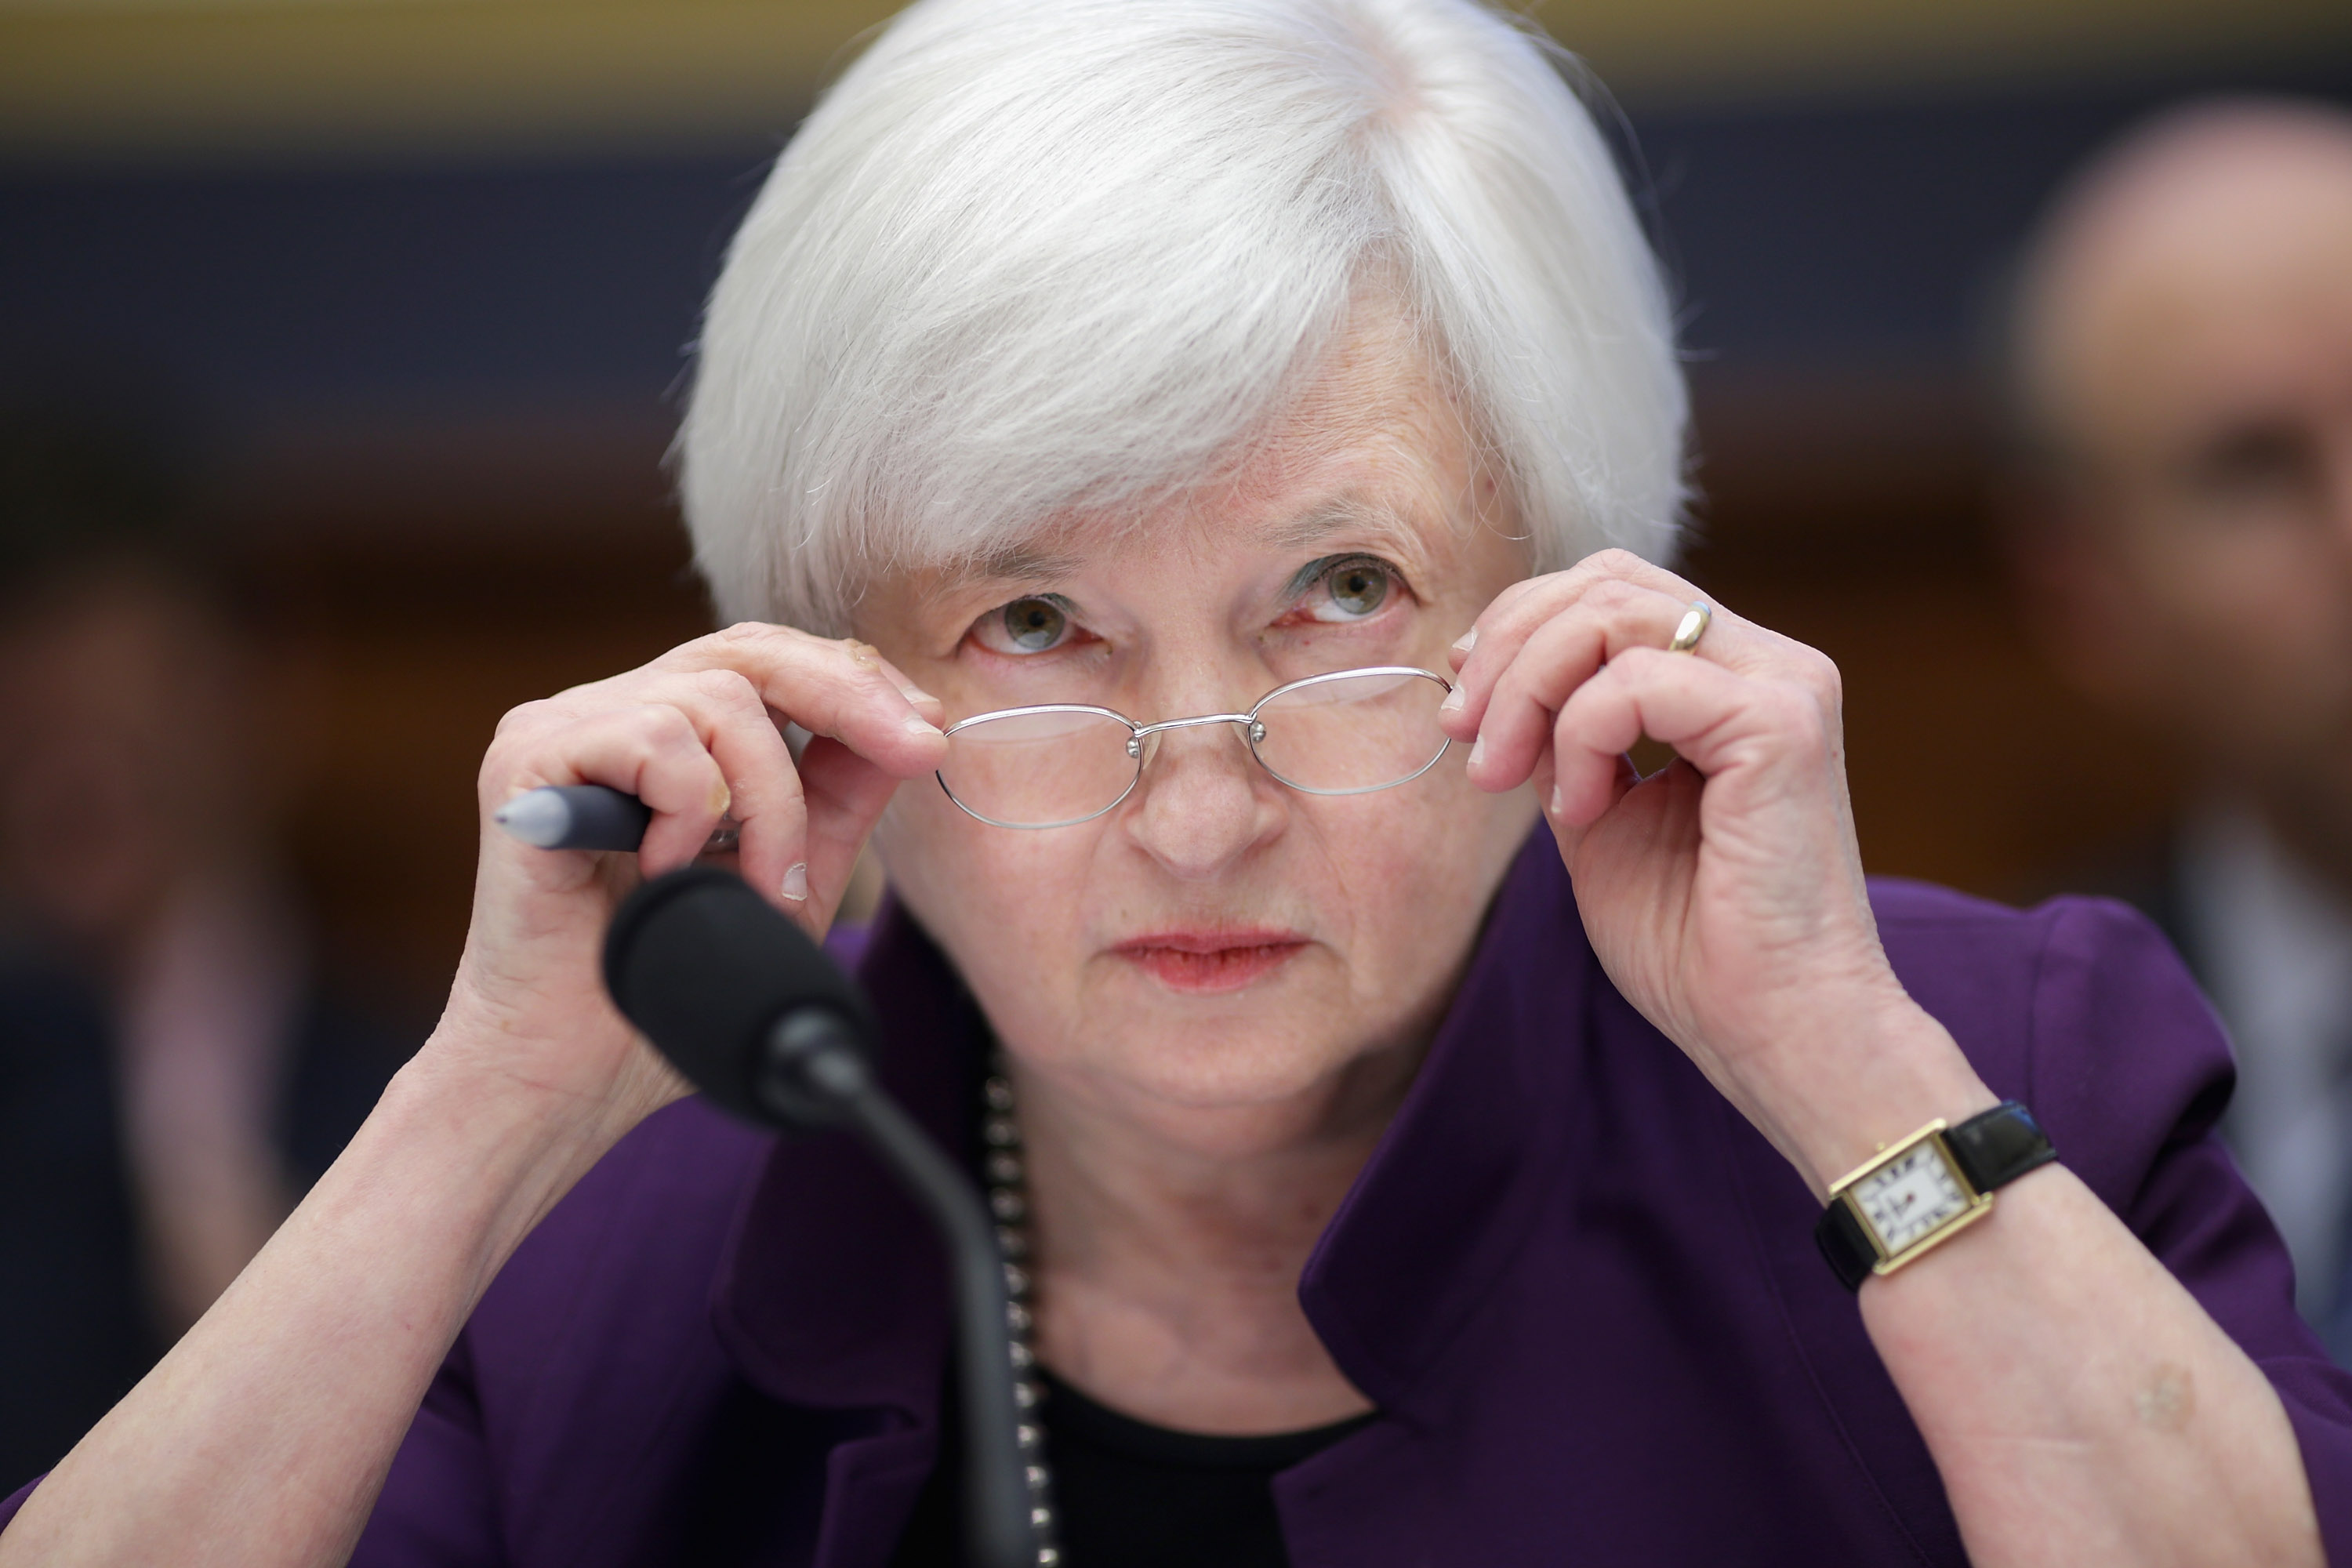 Janet Yellen Calls for More Stimulus, Climate Action, and Corporate Taxation